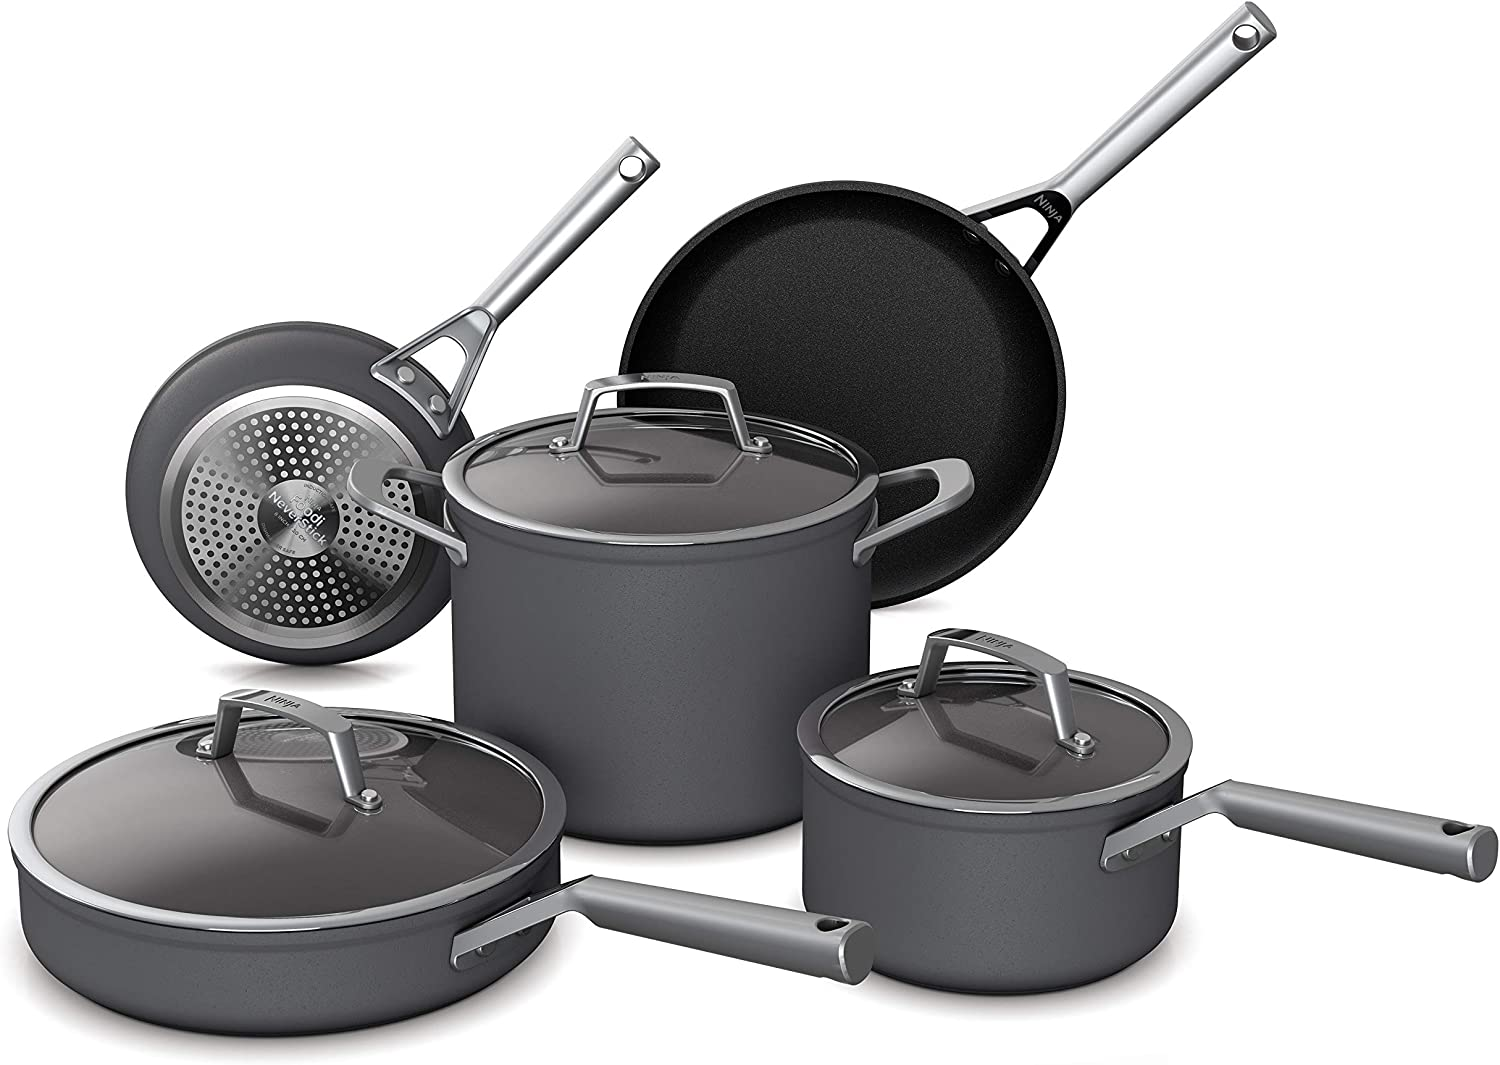 Top 10 Best Signature Cookware For Gas Stove [ Buying Guide -2021] 8